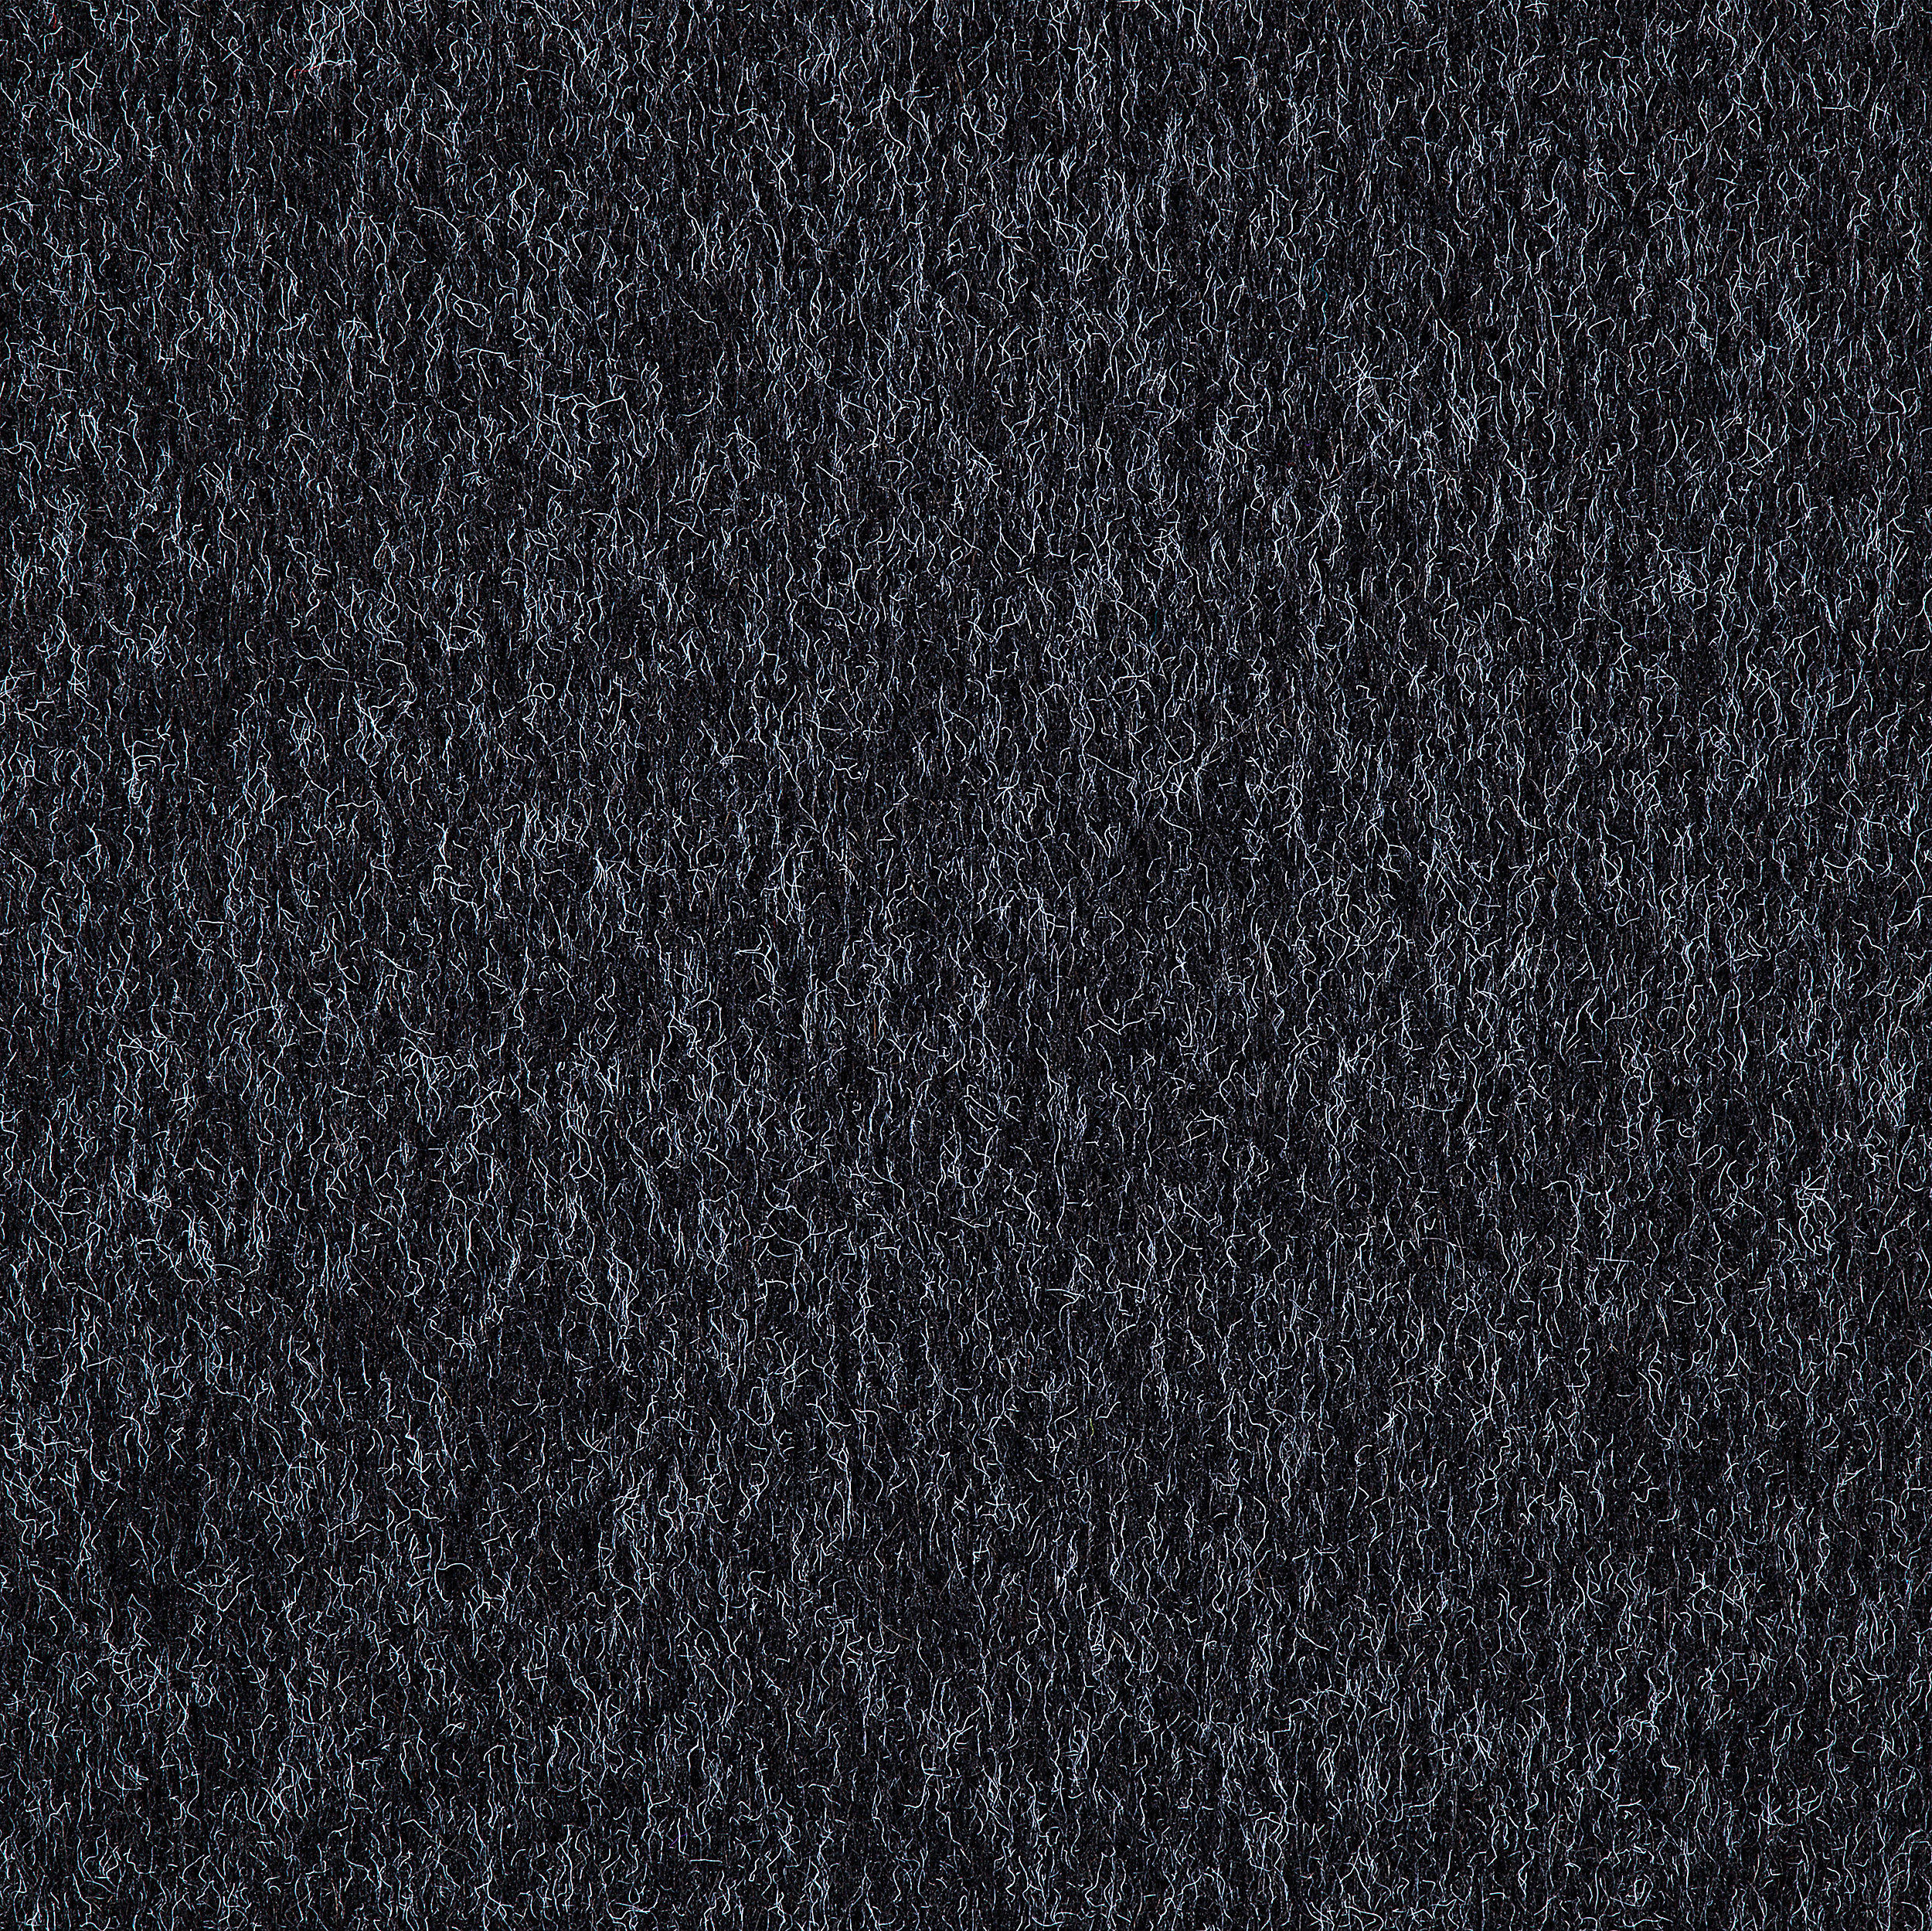 Flor Anthracite Carpet Tiles From Interface Usa Architonic